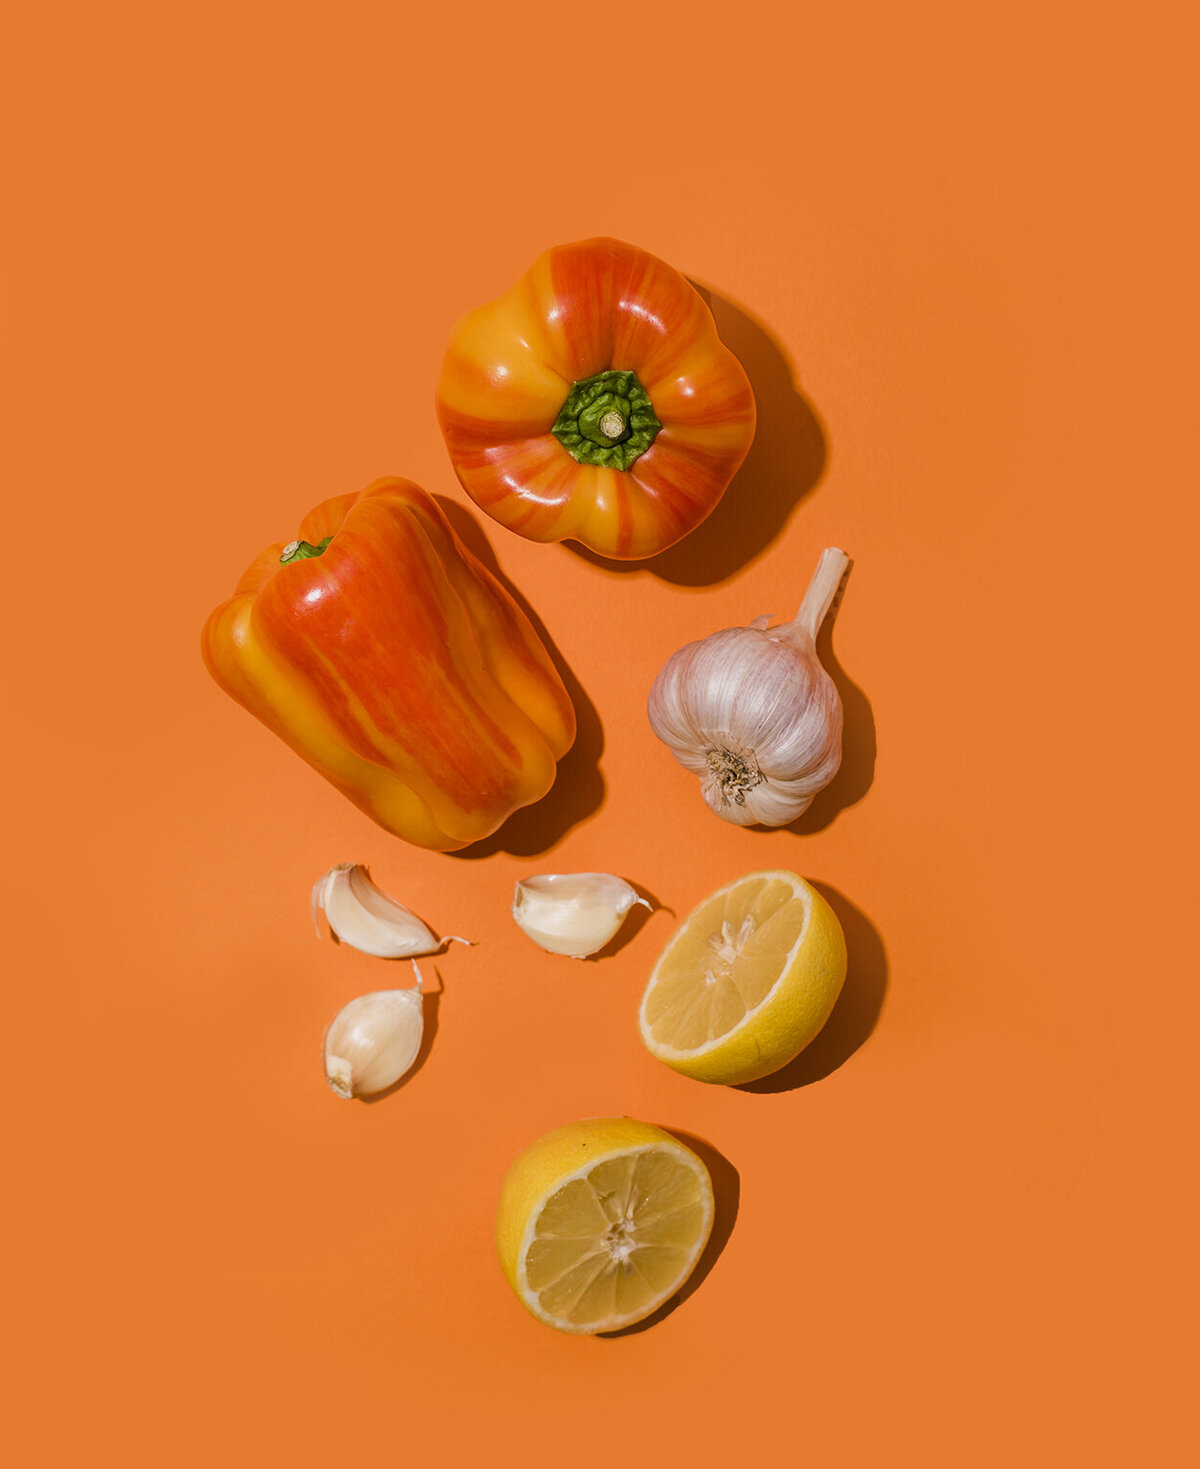 los angeles food photographer produce photography peppers and garlic